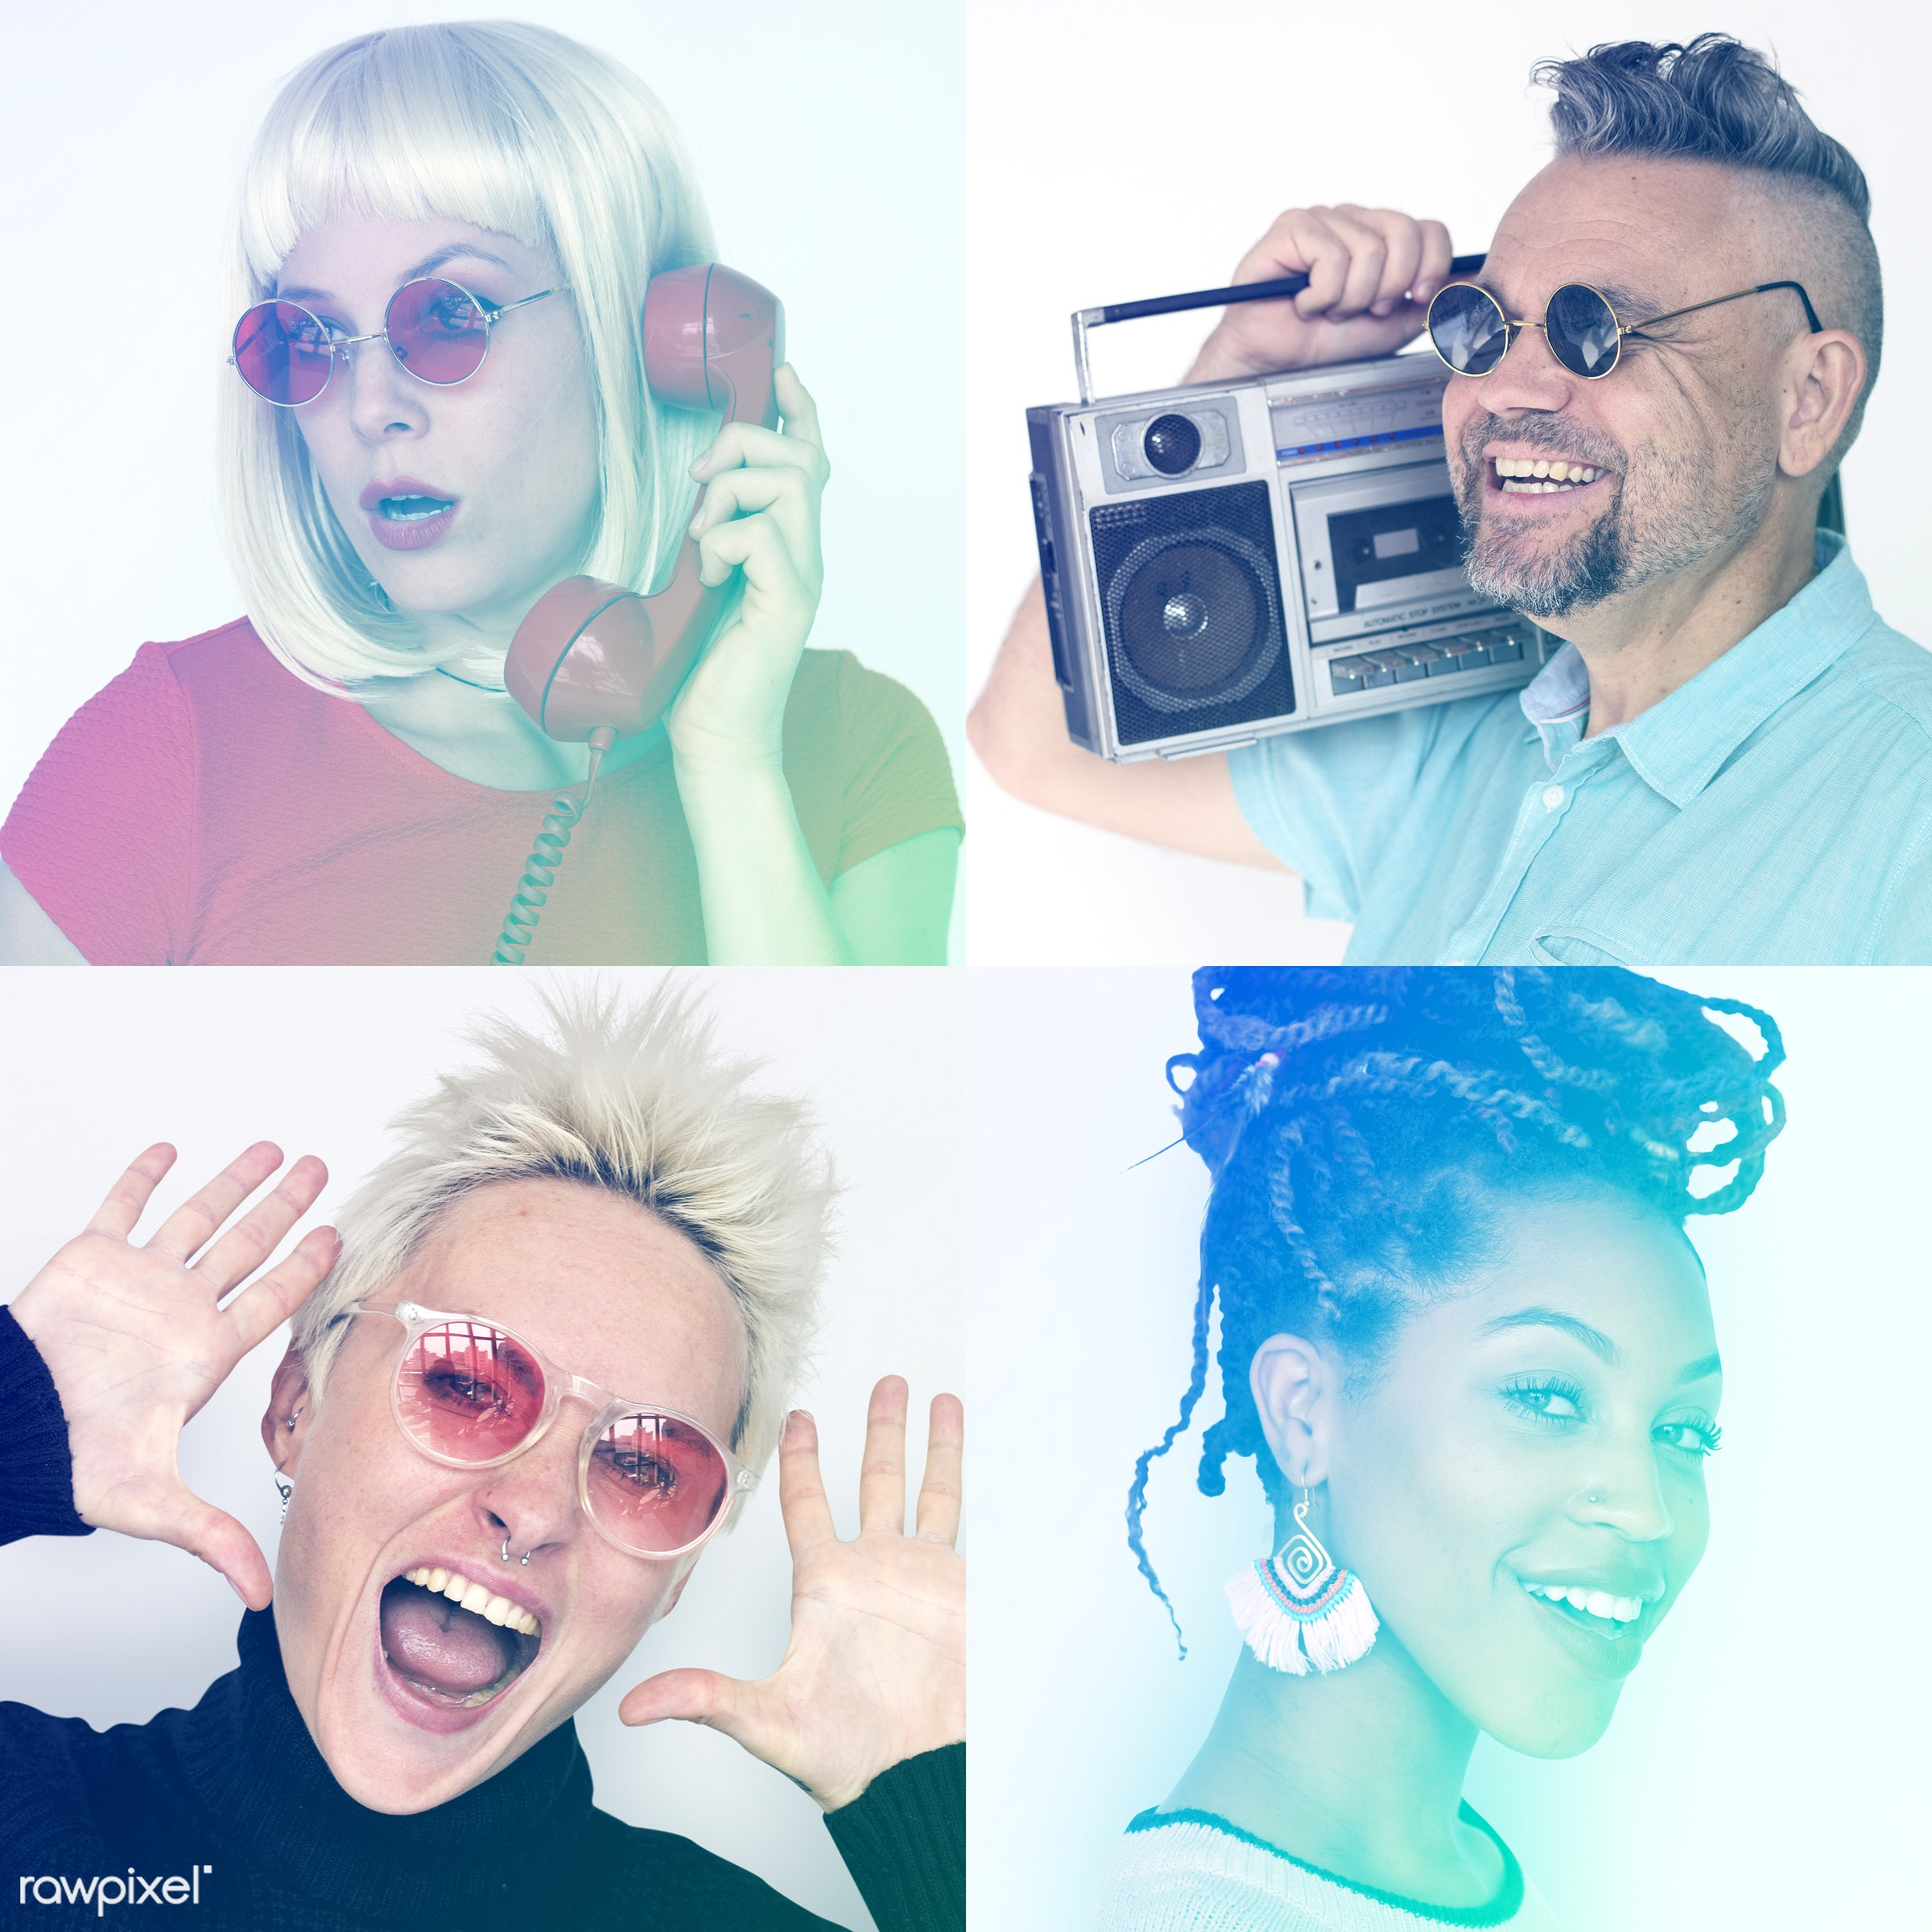 Set of portraits of funky looking people - studio, diverse, set, retro, collection, optimistic, people, positivity, face...